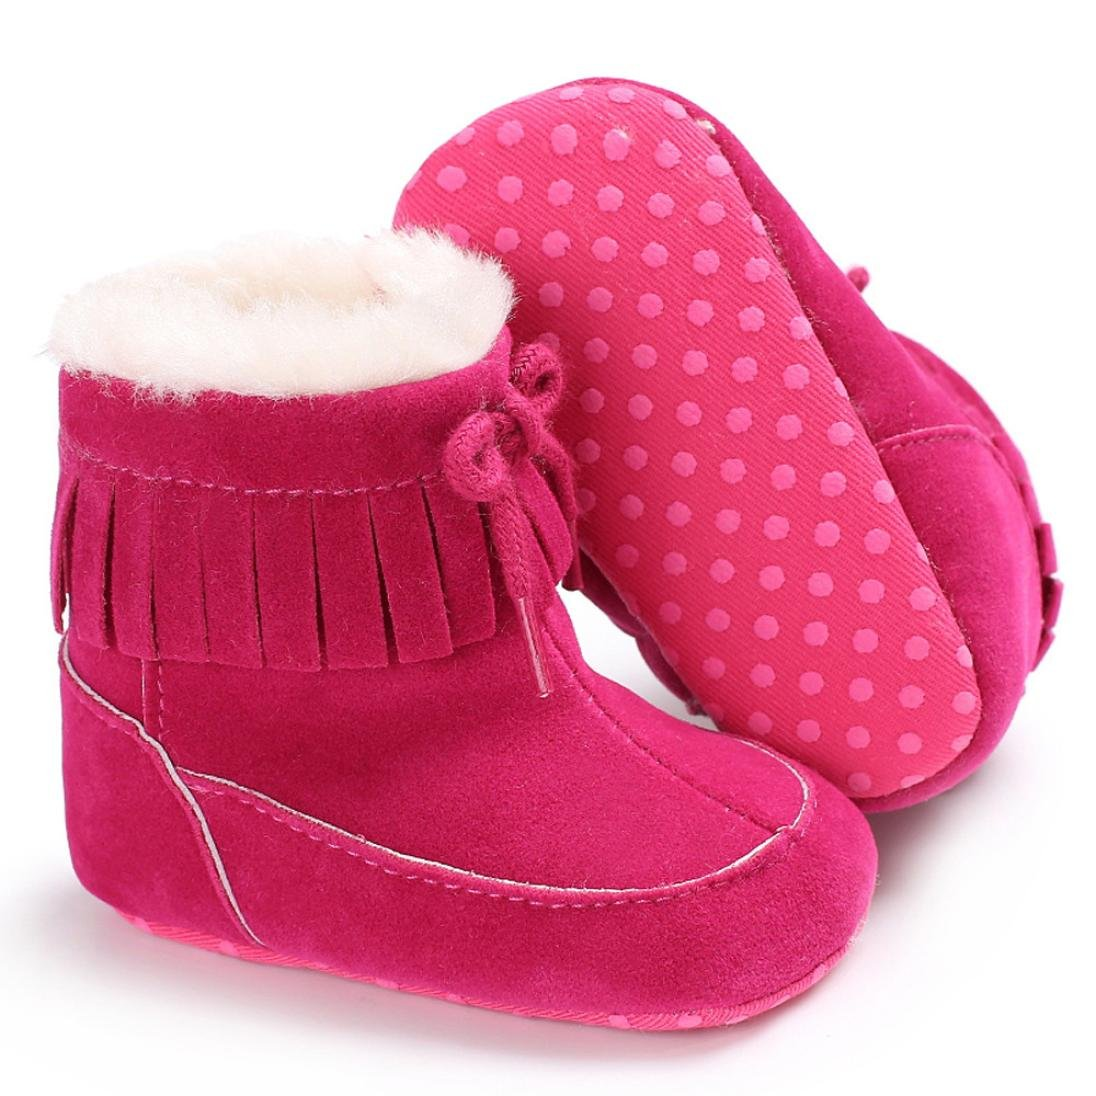 Amiley Autumn Winter Baby Soft Sole Snow Boots Soft Cute Crib Shoes Toddler Boots